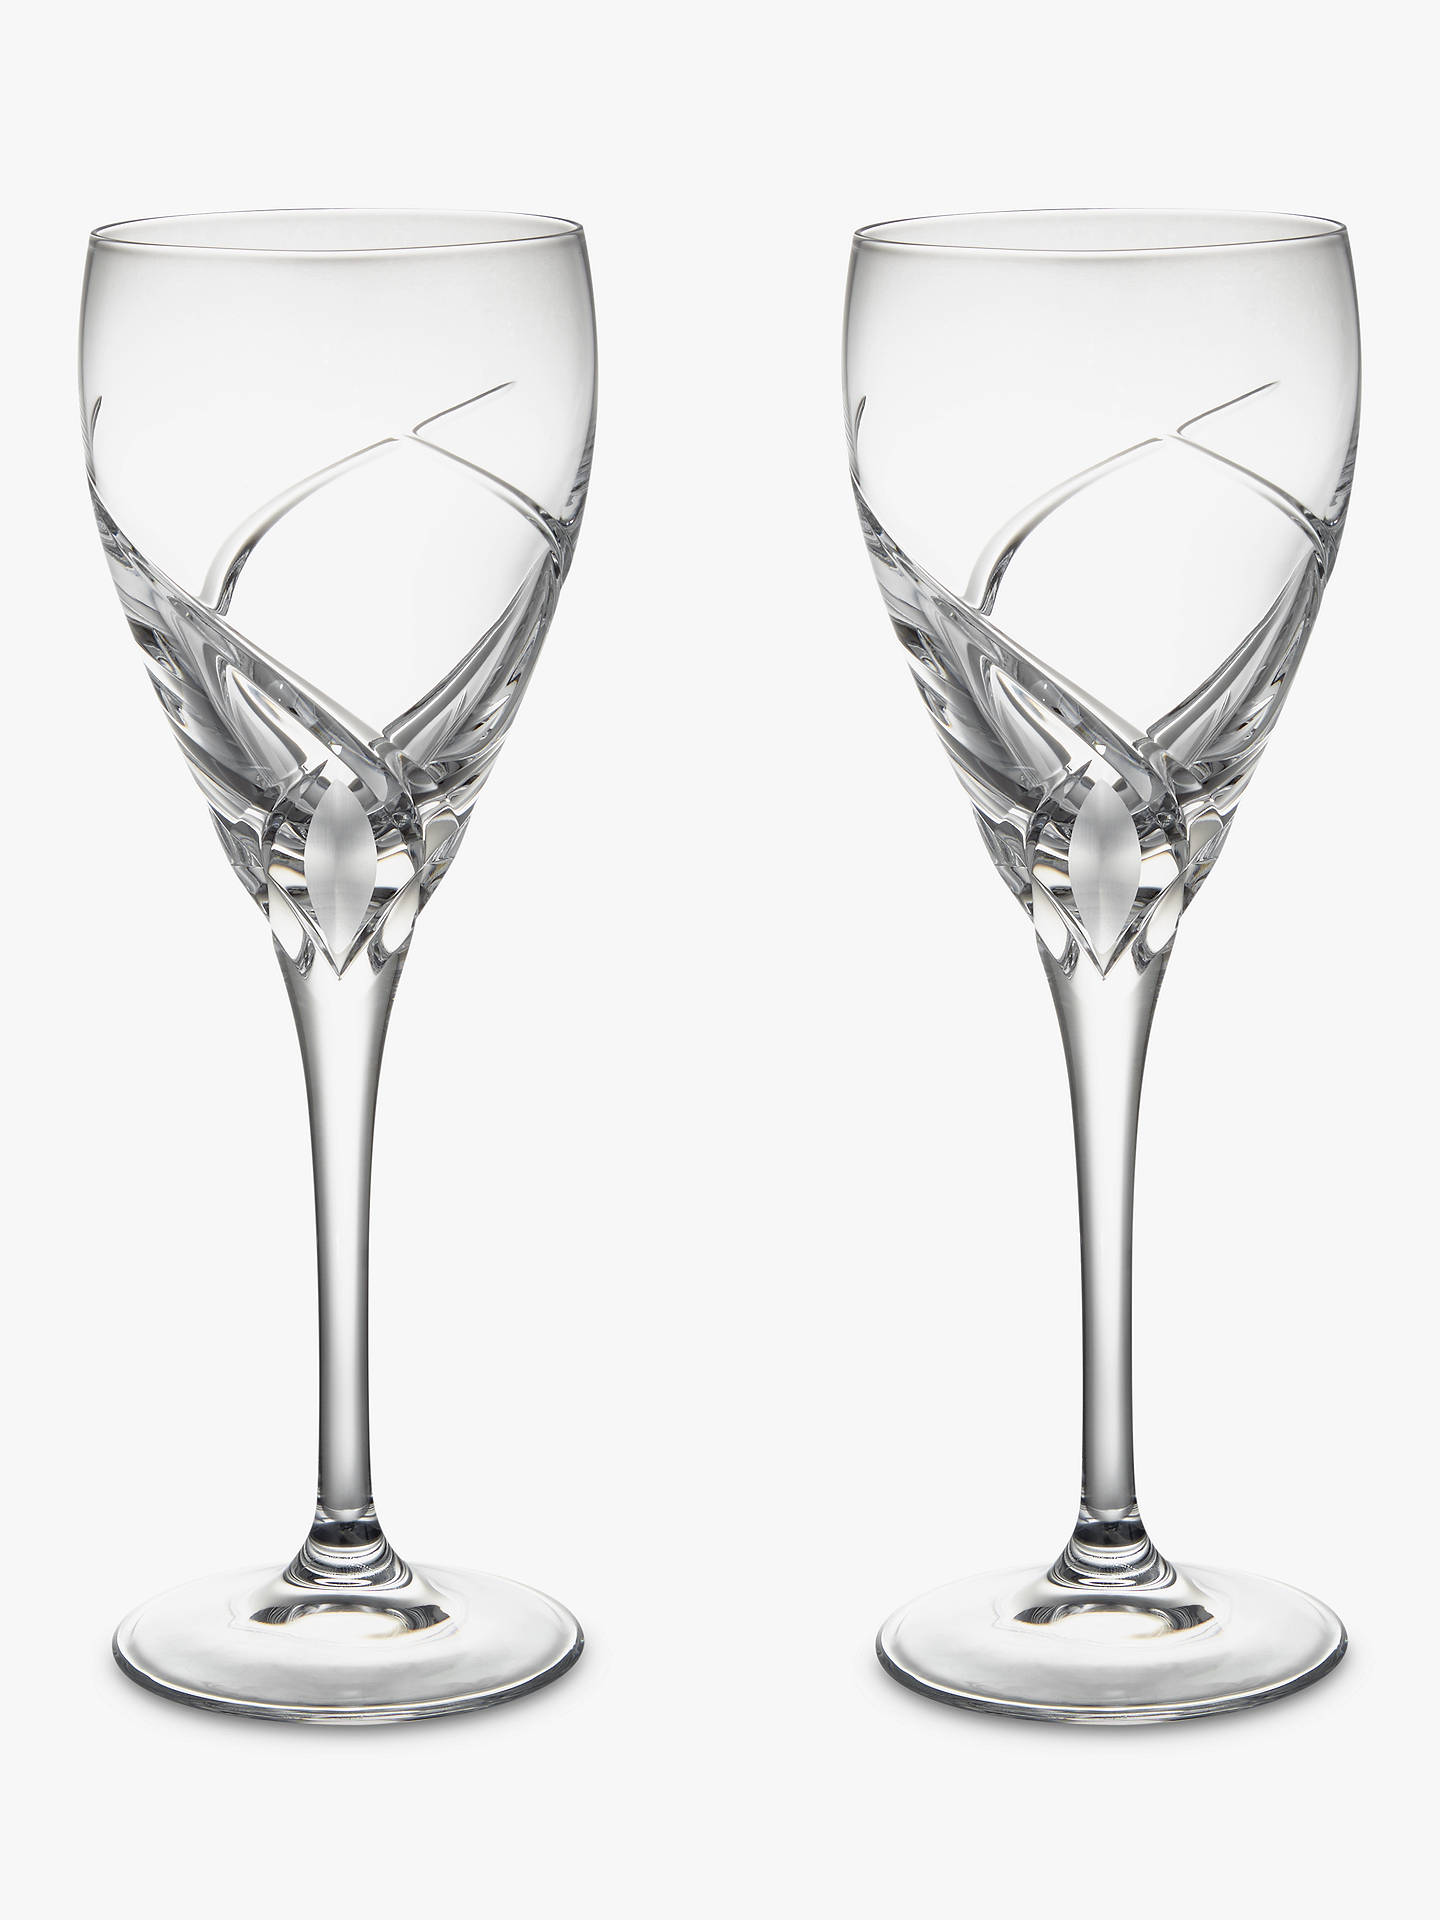 BuyJohn Lewis & Partners Grosseto White Wine Cut Crystal Glasses, Set of 2, Clear Online at johnlewis.com